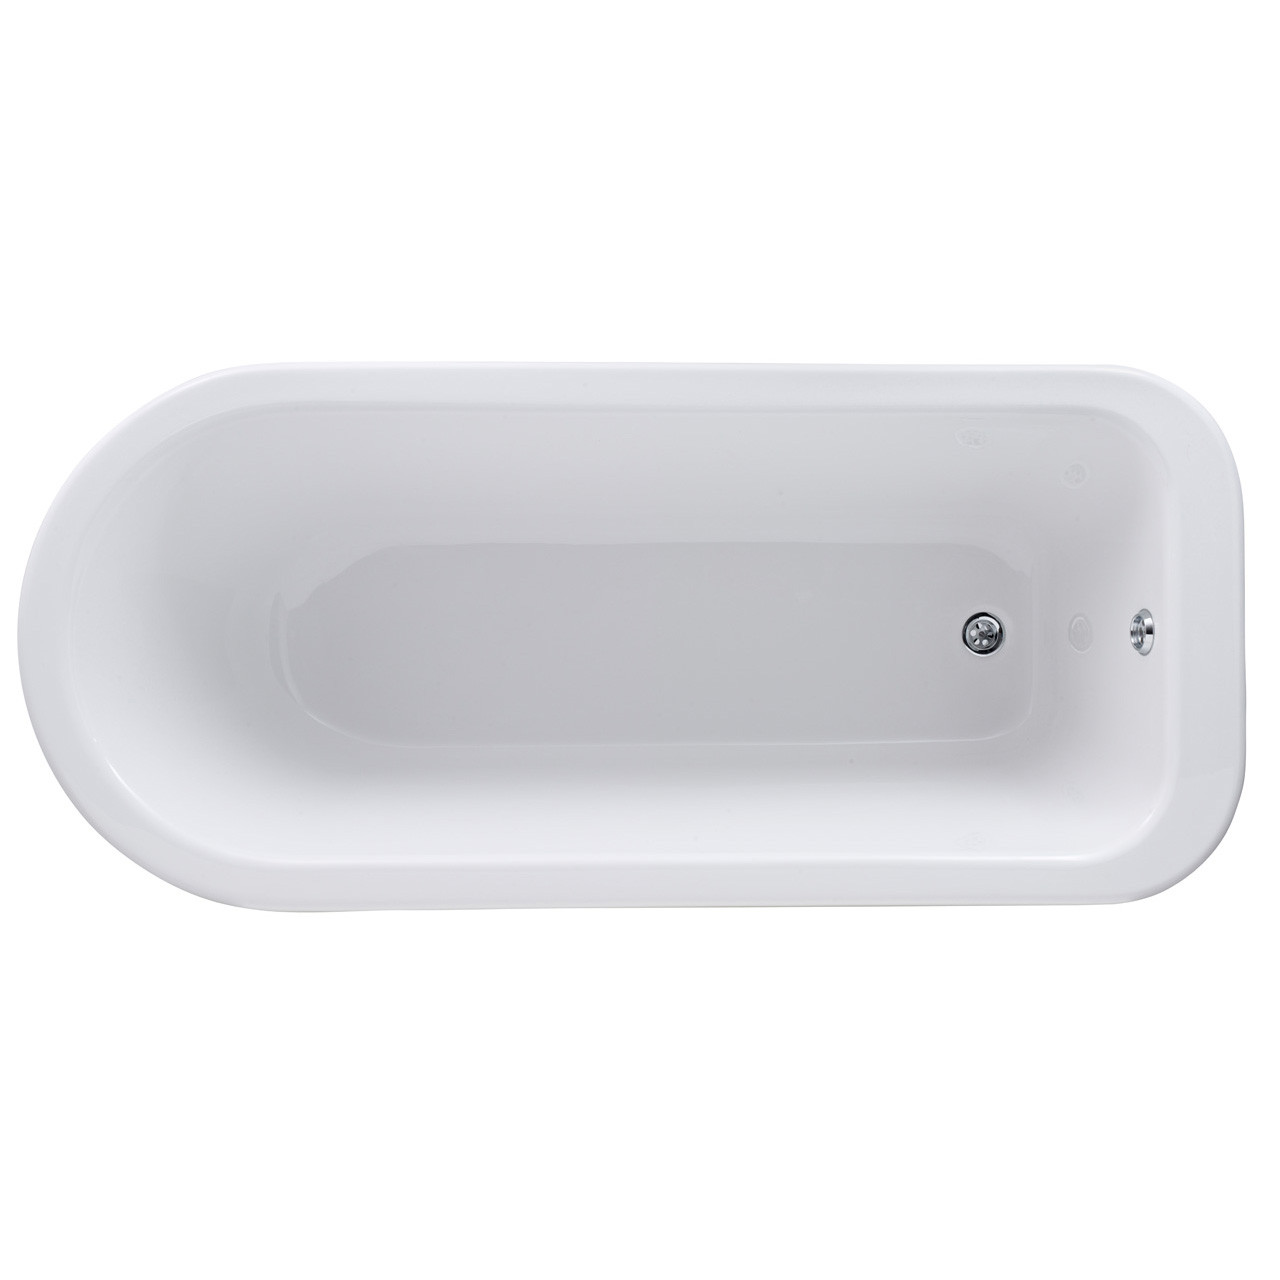 Premier White Berkshire 1700 Single Ended Freestanding Bath with Corbel Legs - RL1707T